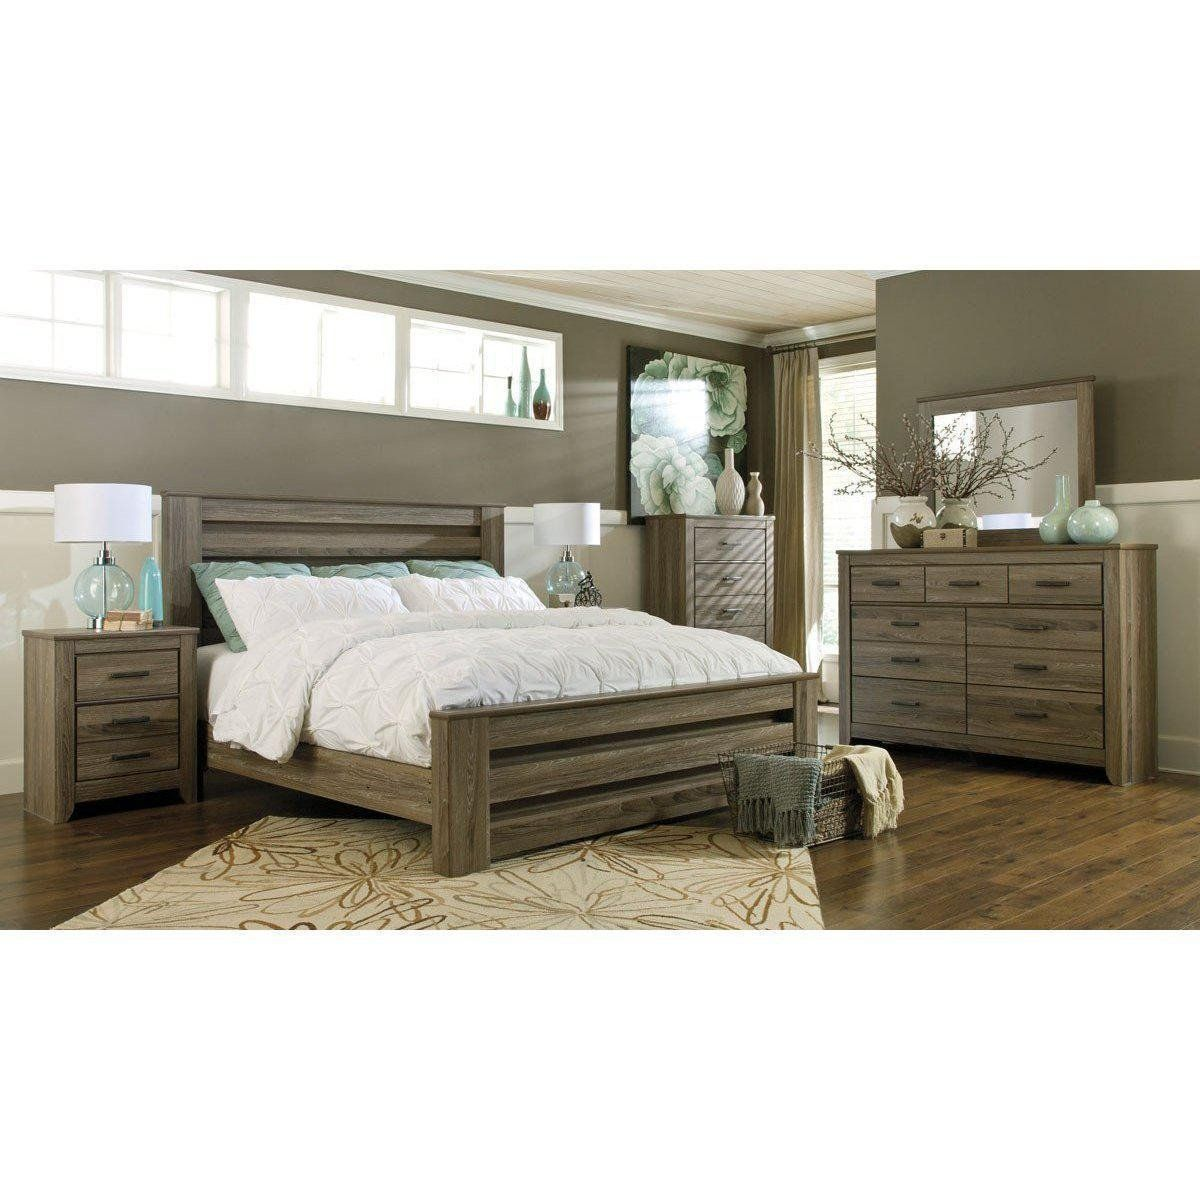 Jennifer Convertibles Bedroom Set Zachary Bedroom Package in 4